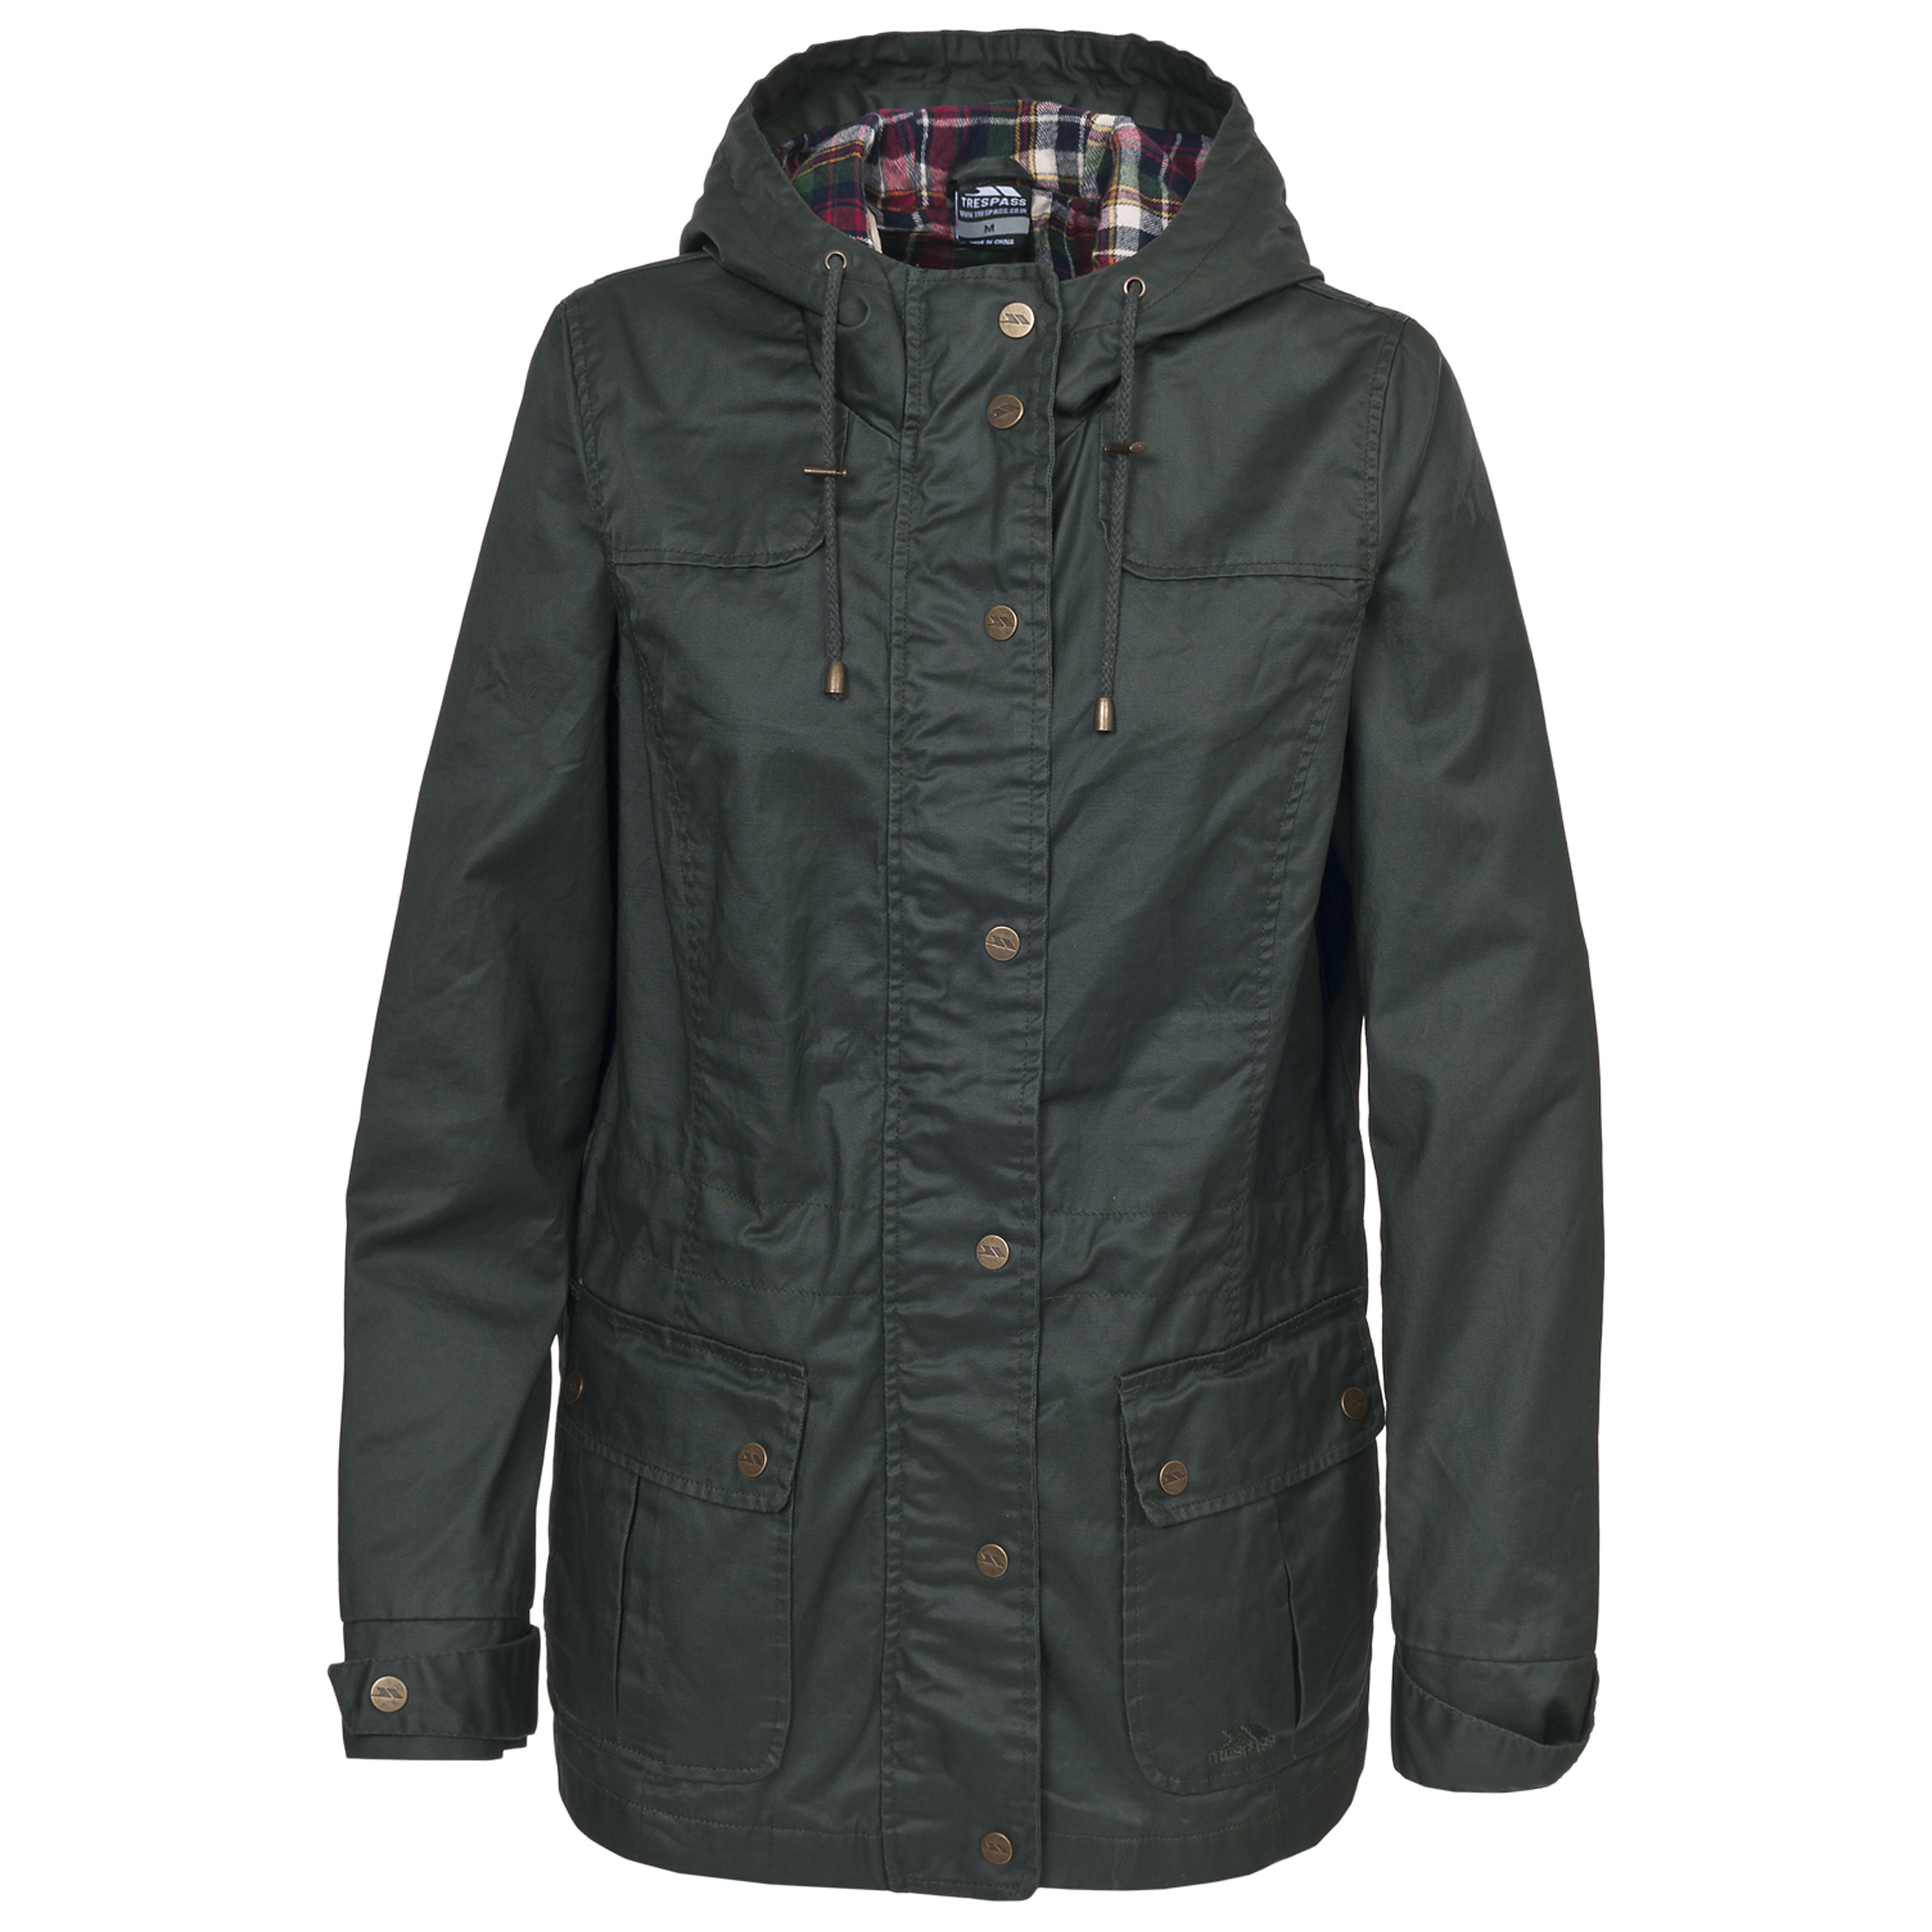 Find great deals on eBay for womens waxed jacket. Shop with confidence.